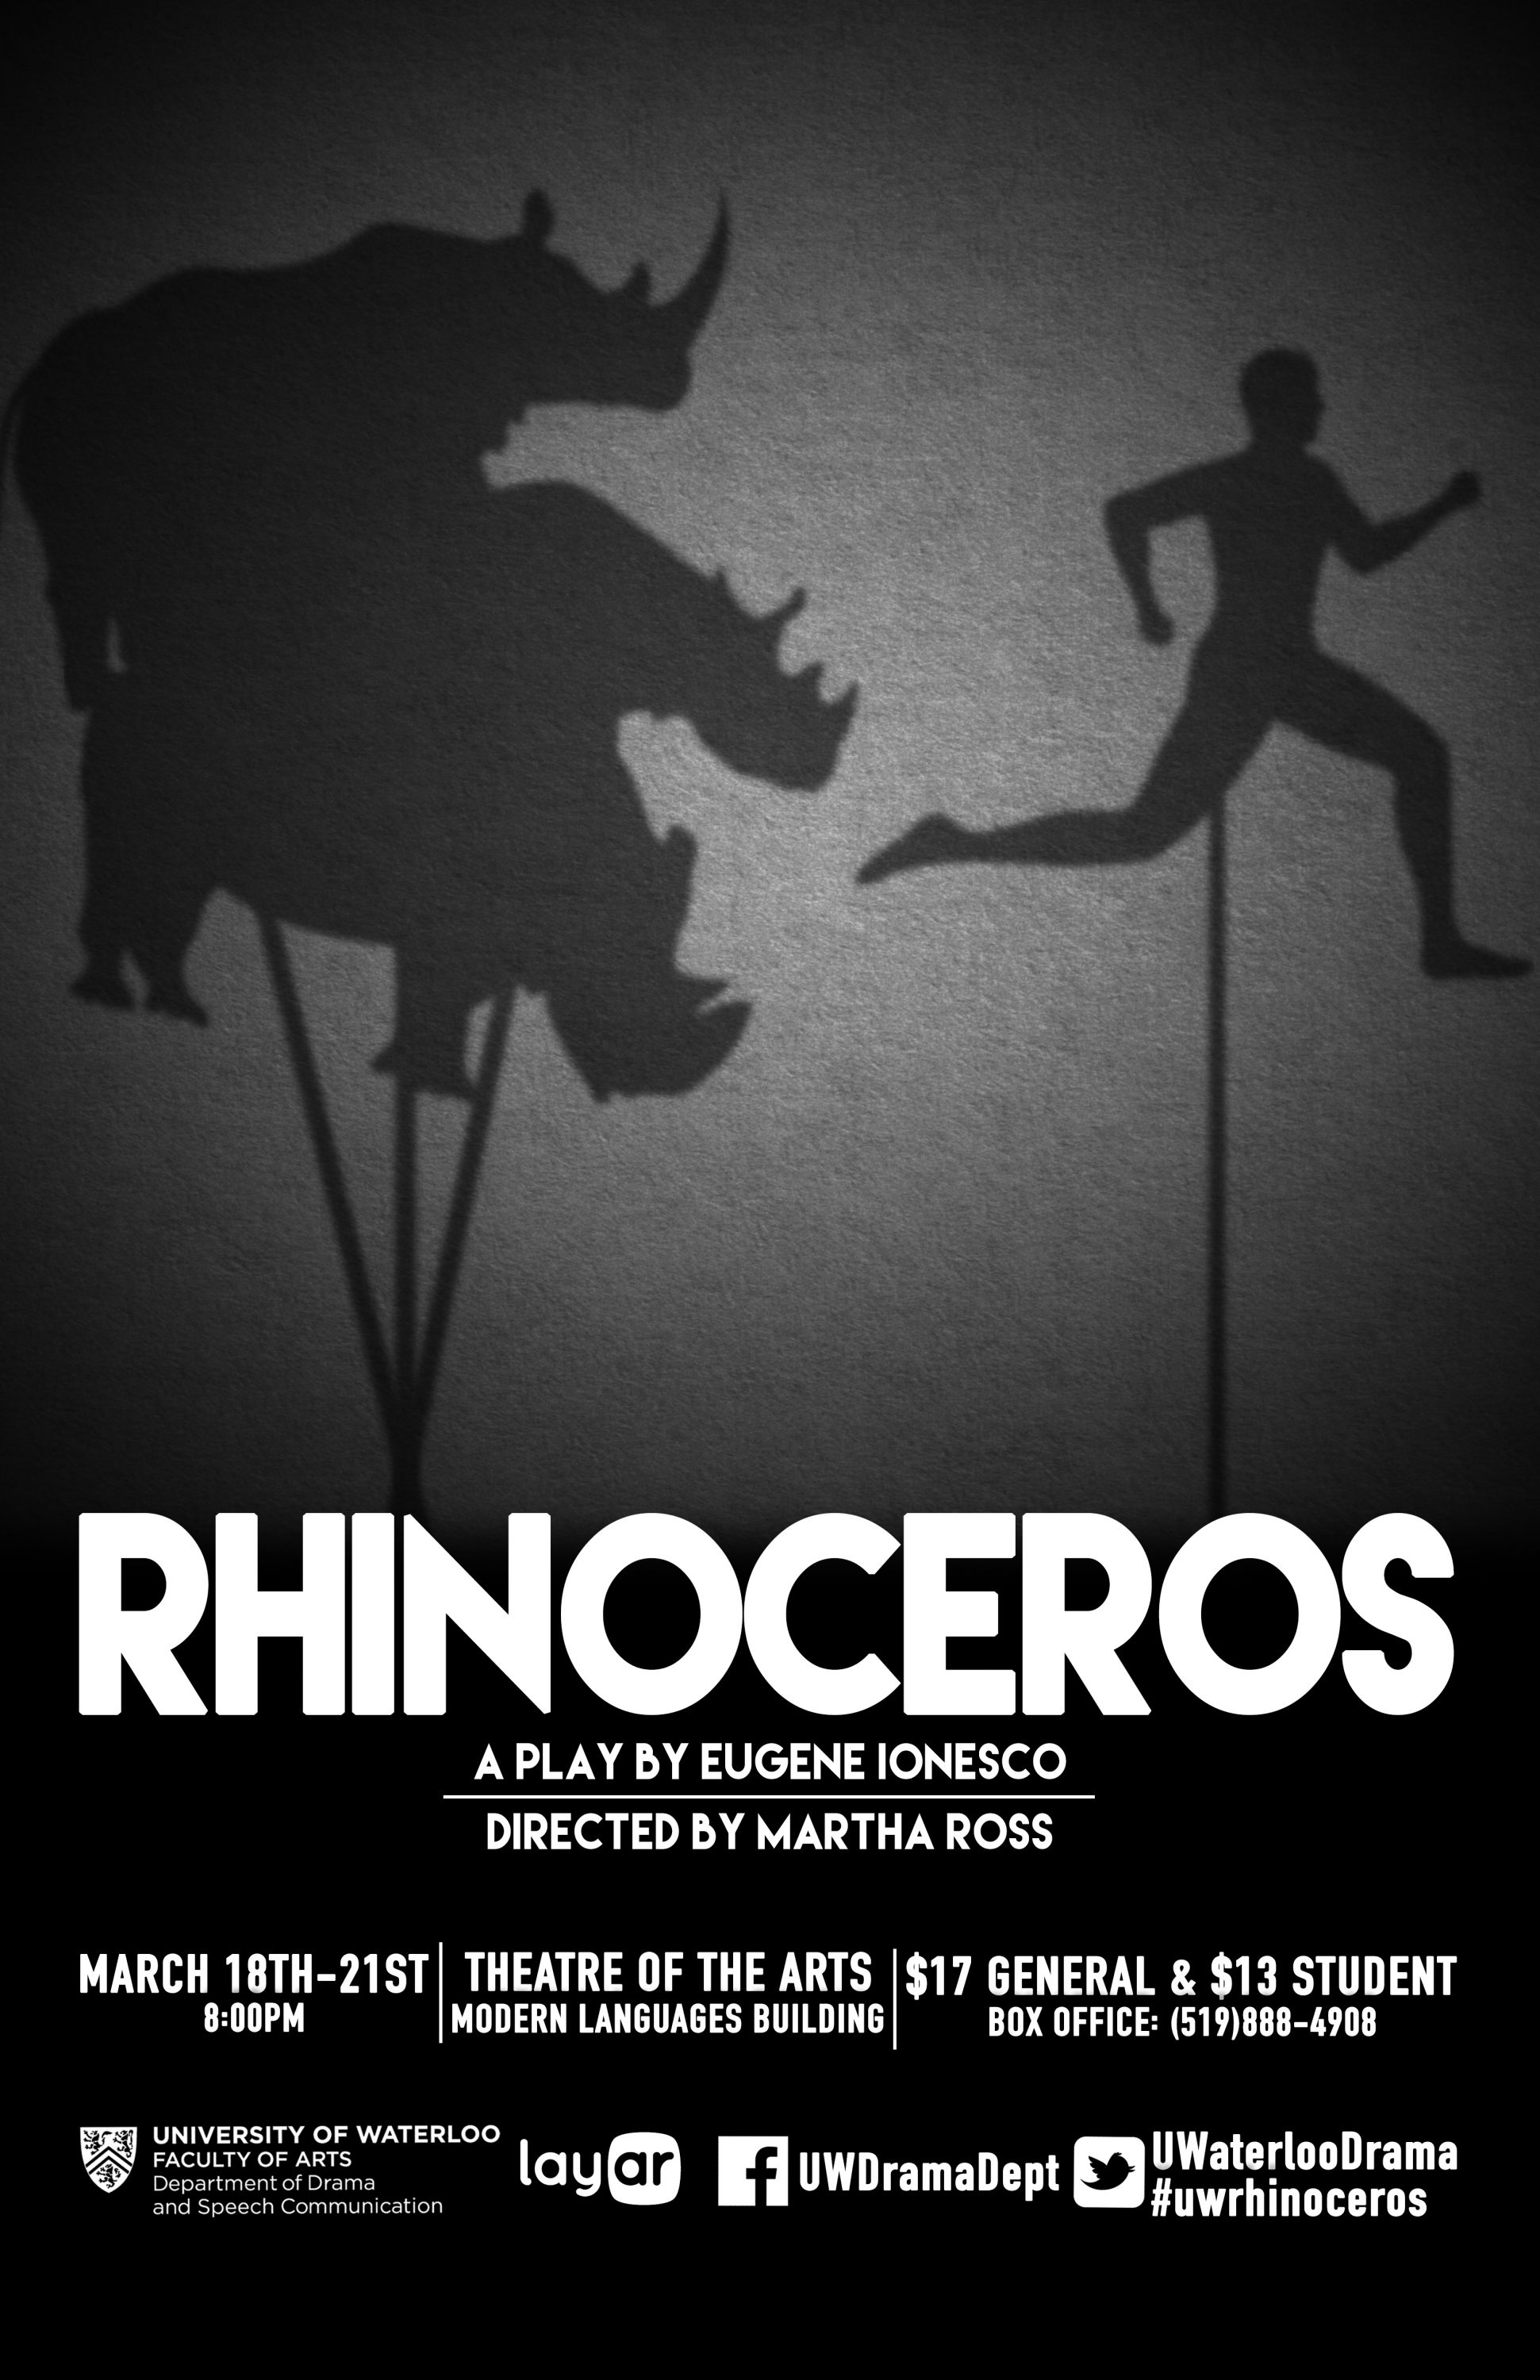 black and white poster of shadow puppet rhinoceroses chasing a man